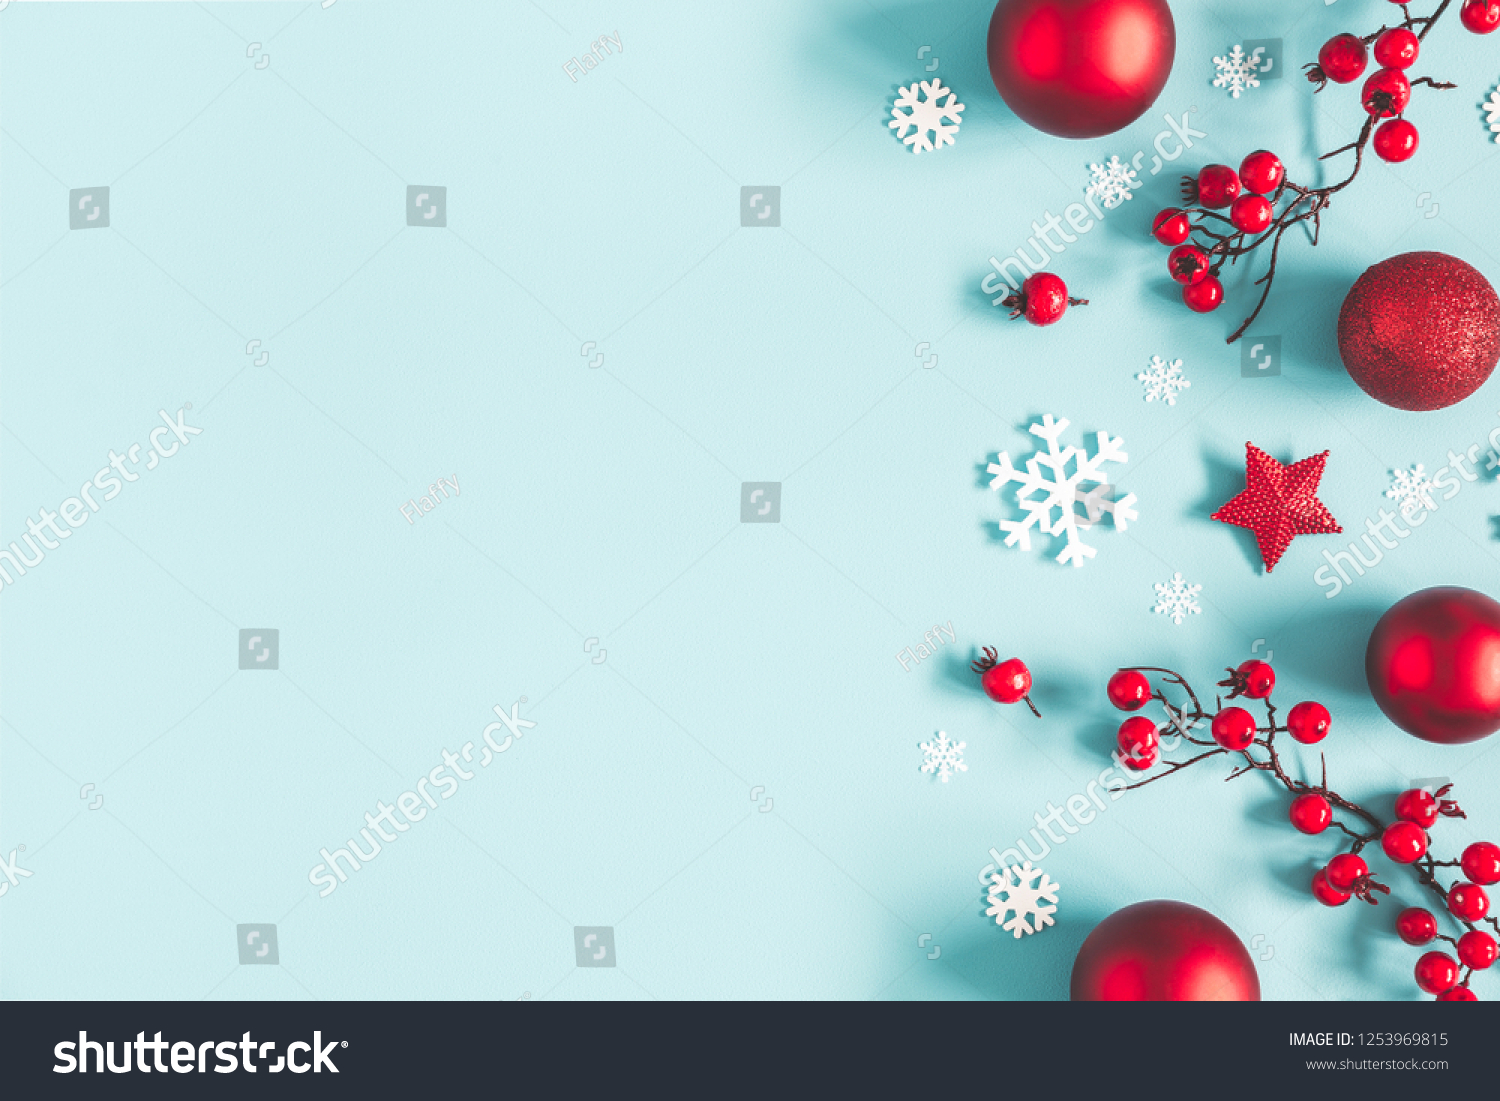 Christmas or winter composition. Frame made of snowflakes, balls and red berries on pastel blue background. Christmas, winter, new year concept. Flat lay, top view, copy space #1253969815